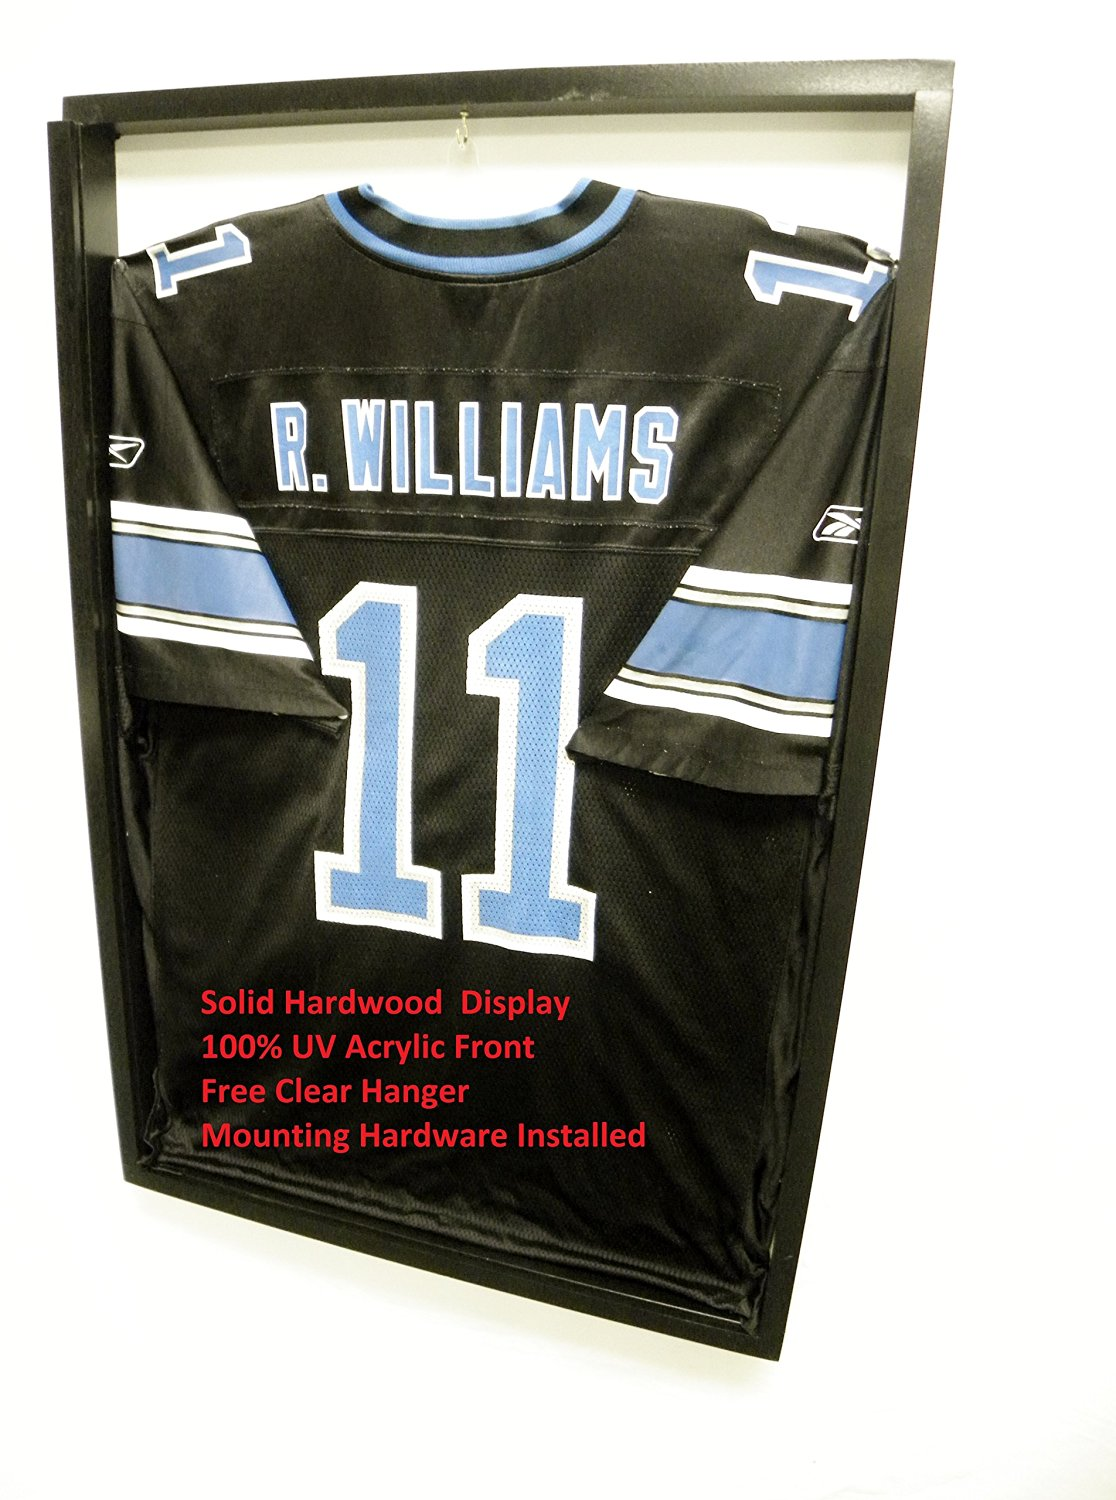 078ef905a JERSEY Display Cases   Frame Shadow Box 3 Jersey Cases Football Baseball  Basketball WHITE 3BSW